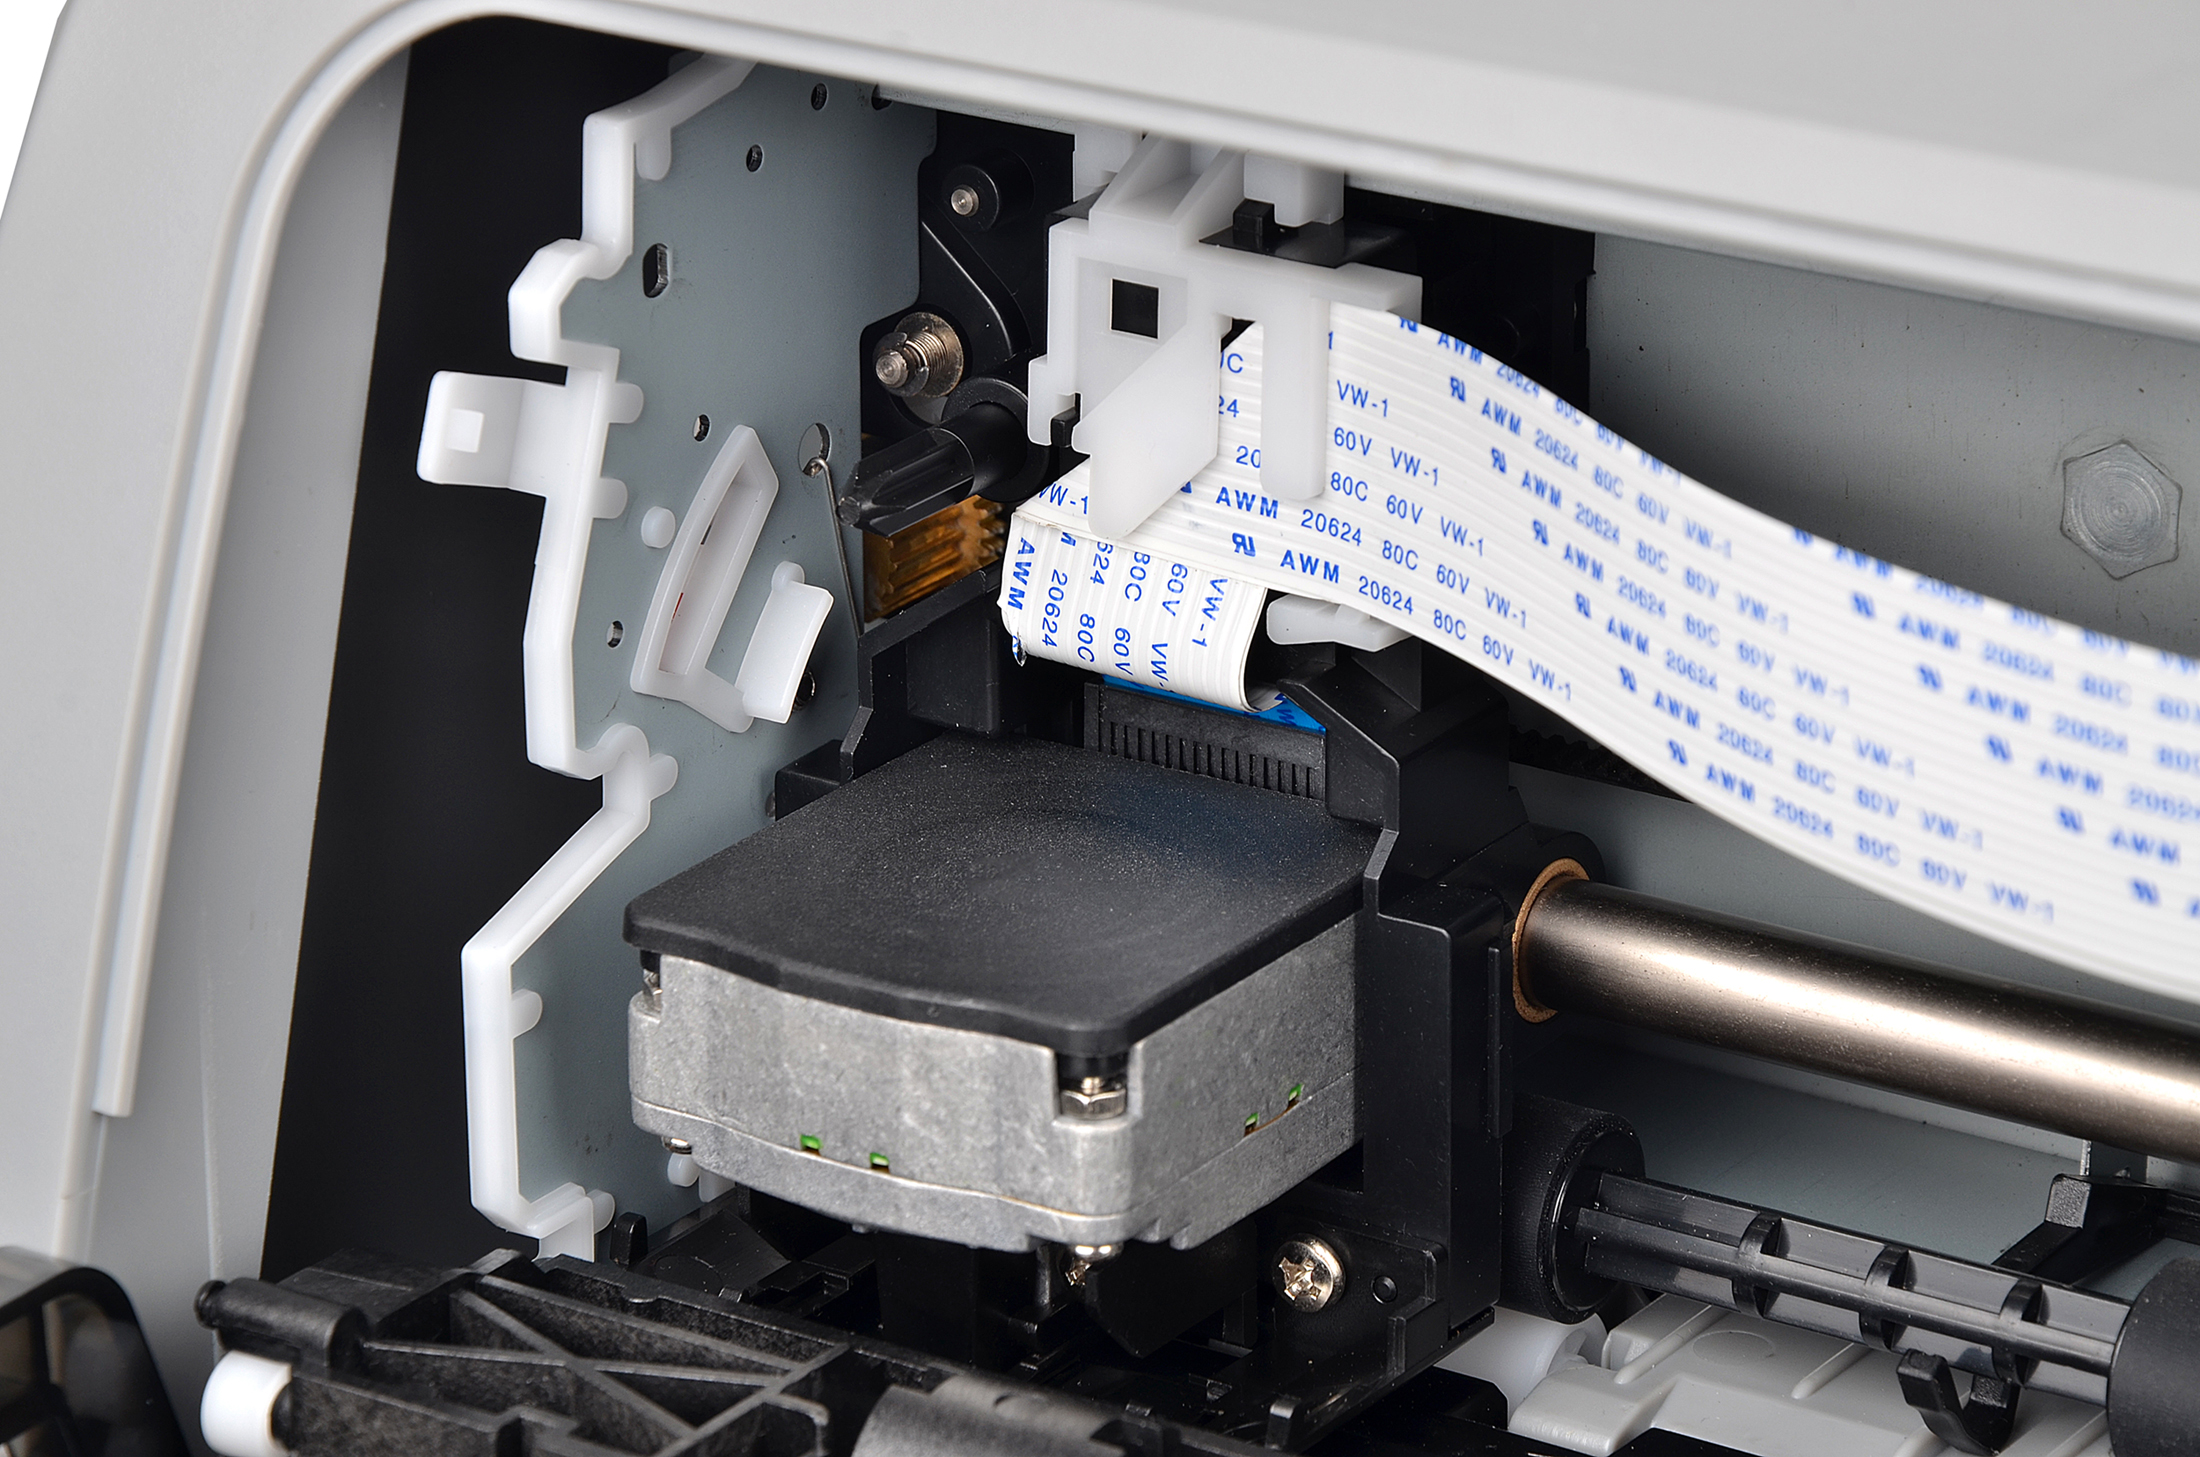 24 PIN SERIAL IMPACT DOT MATRIX PRINTER